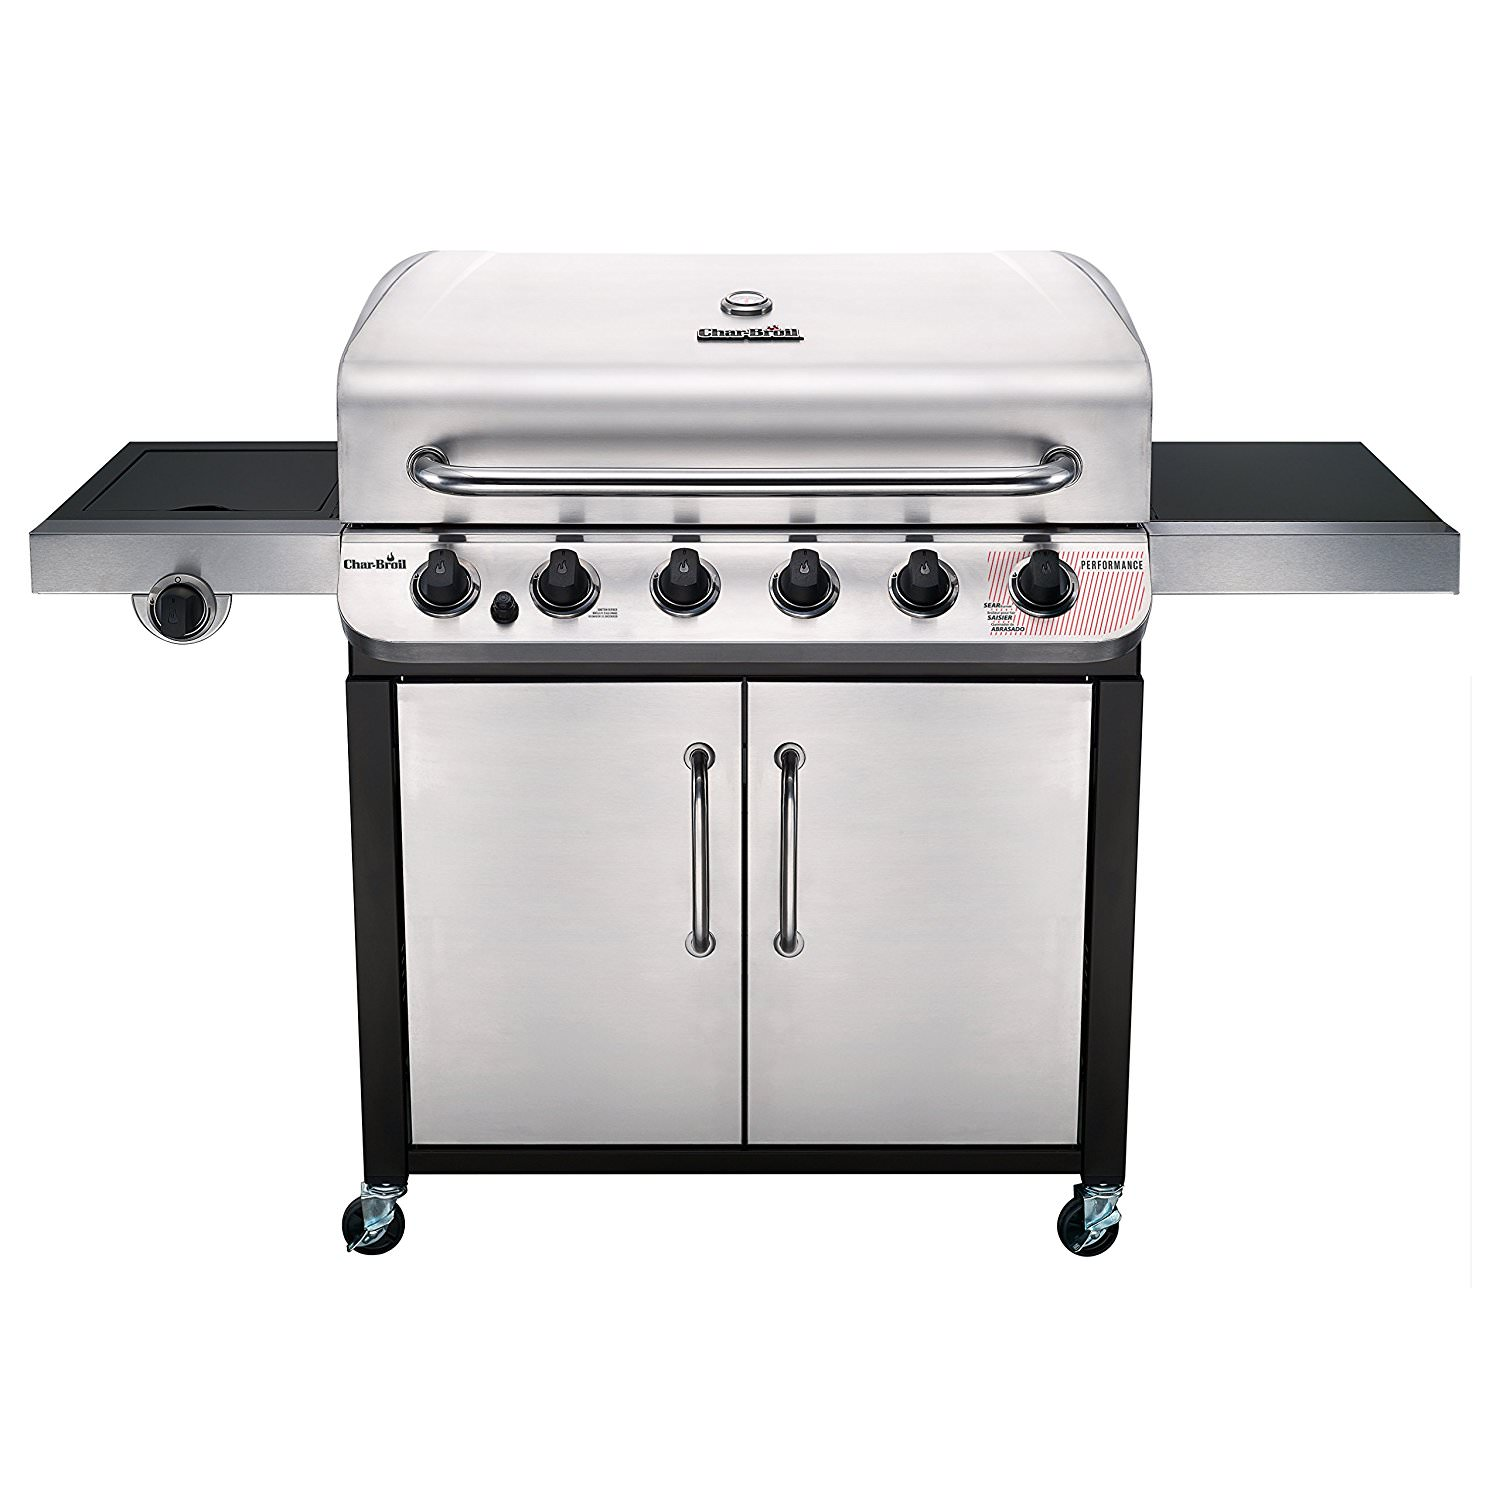 Char-Broil Performance Series™ 6-burner Gas Grill